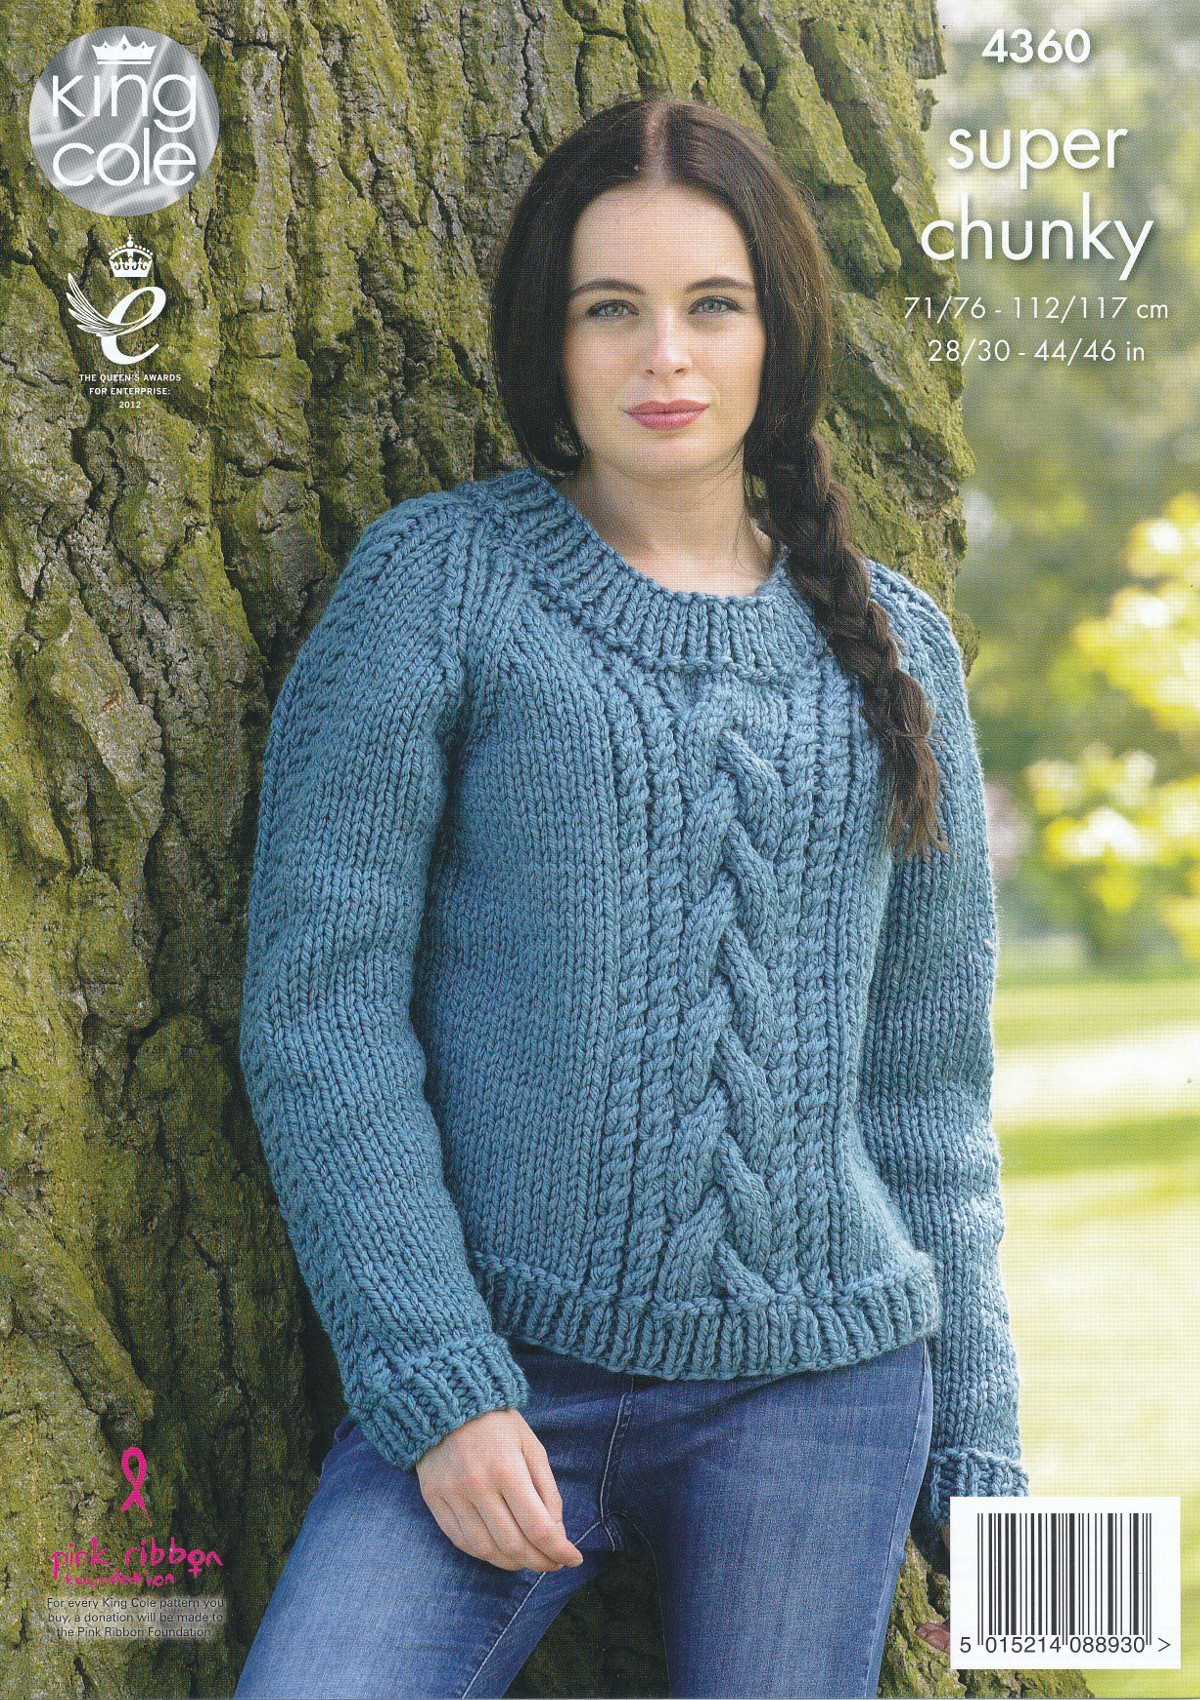 Elegant La S Super Chunky Knitting Pattern King Cole Cable Knit Cable Knit Sweater Pattern Of Lovely Hand Knit Sweater Womens Cable Knit Cardigan Hooded Coat Cable Knit Sweater Pattern